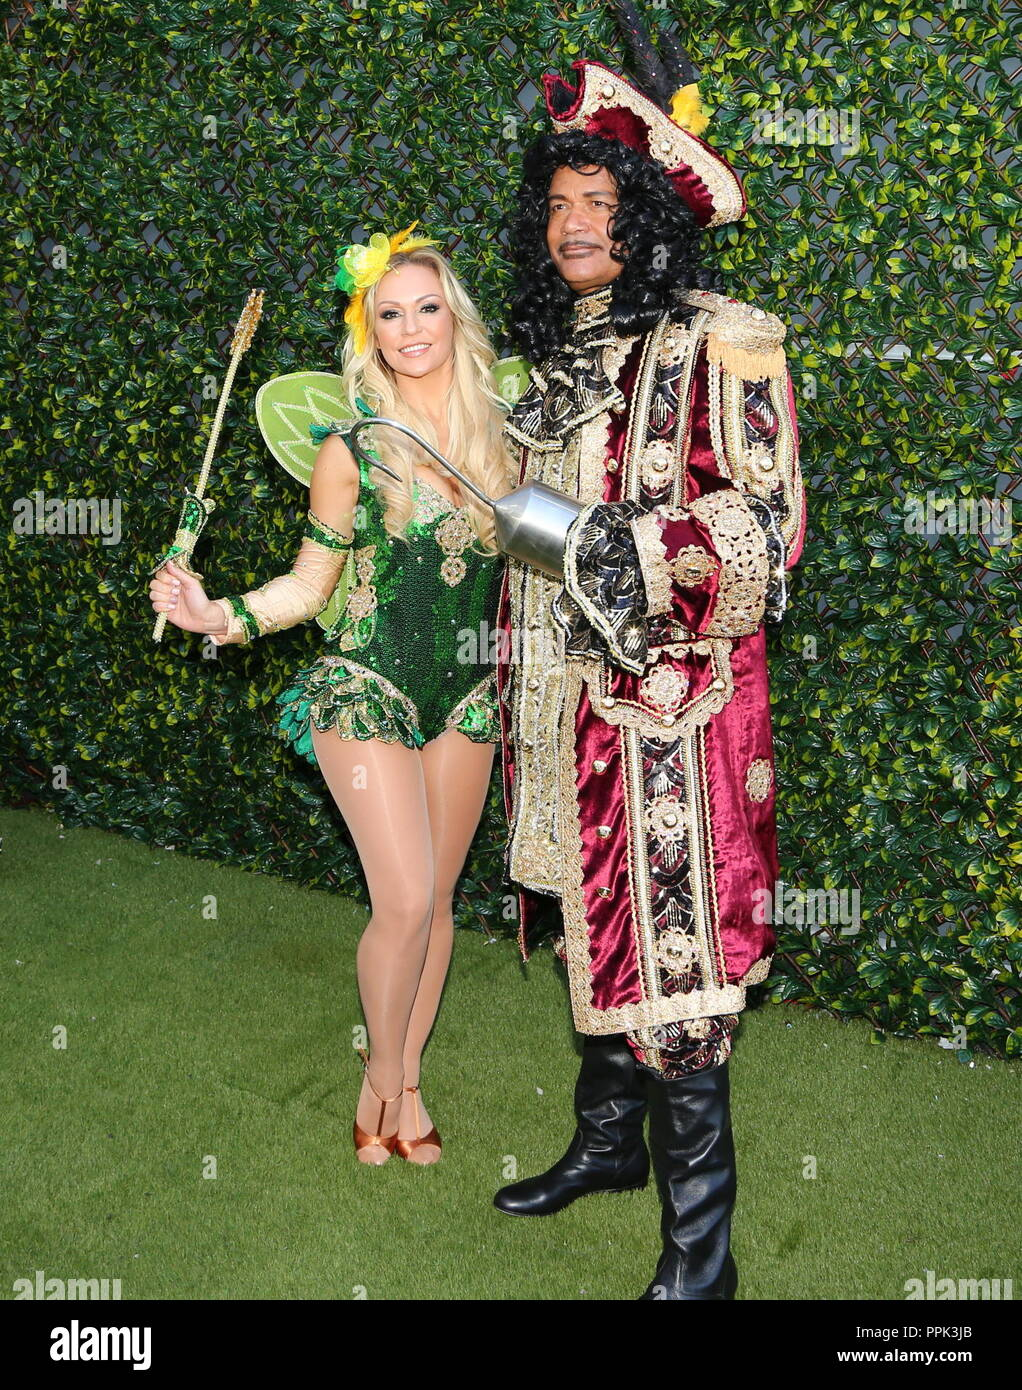 Louis Emerick And Kristina Rhianoff attend Pantomime Photocall - Stock Image